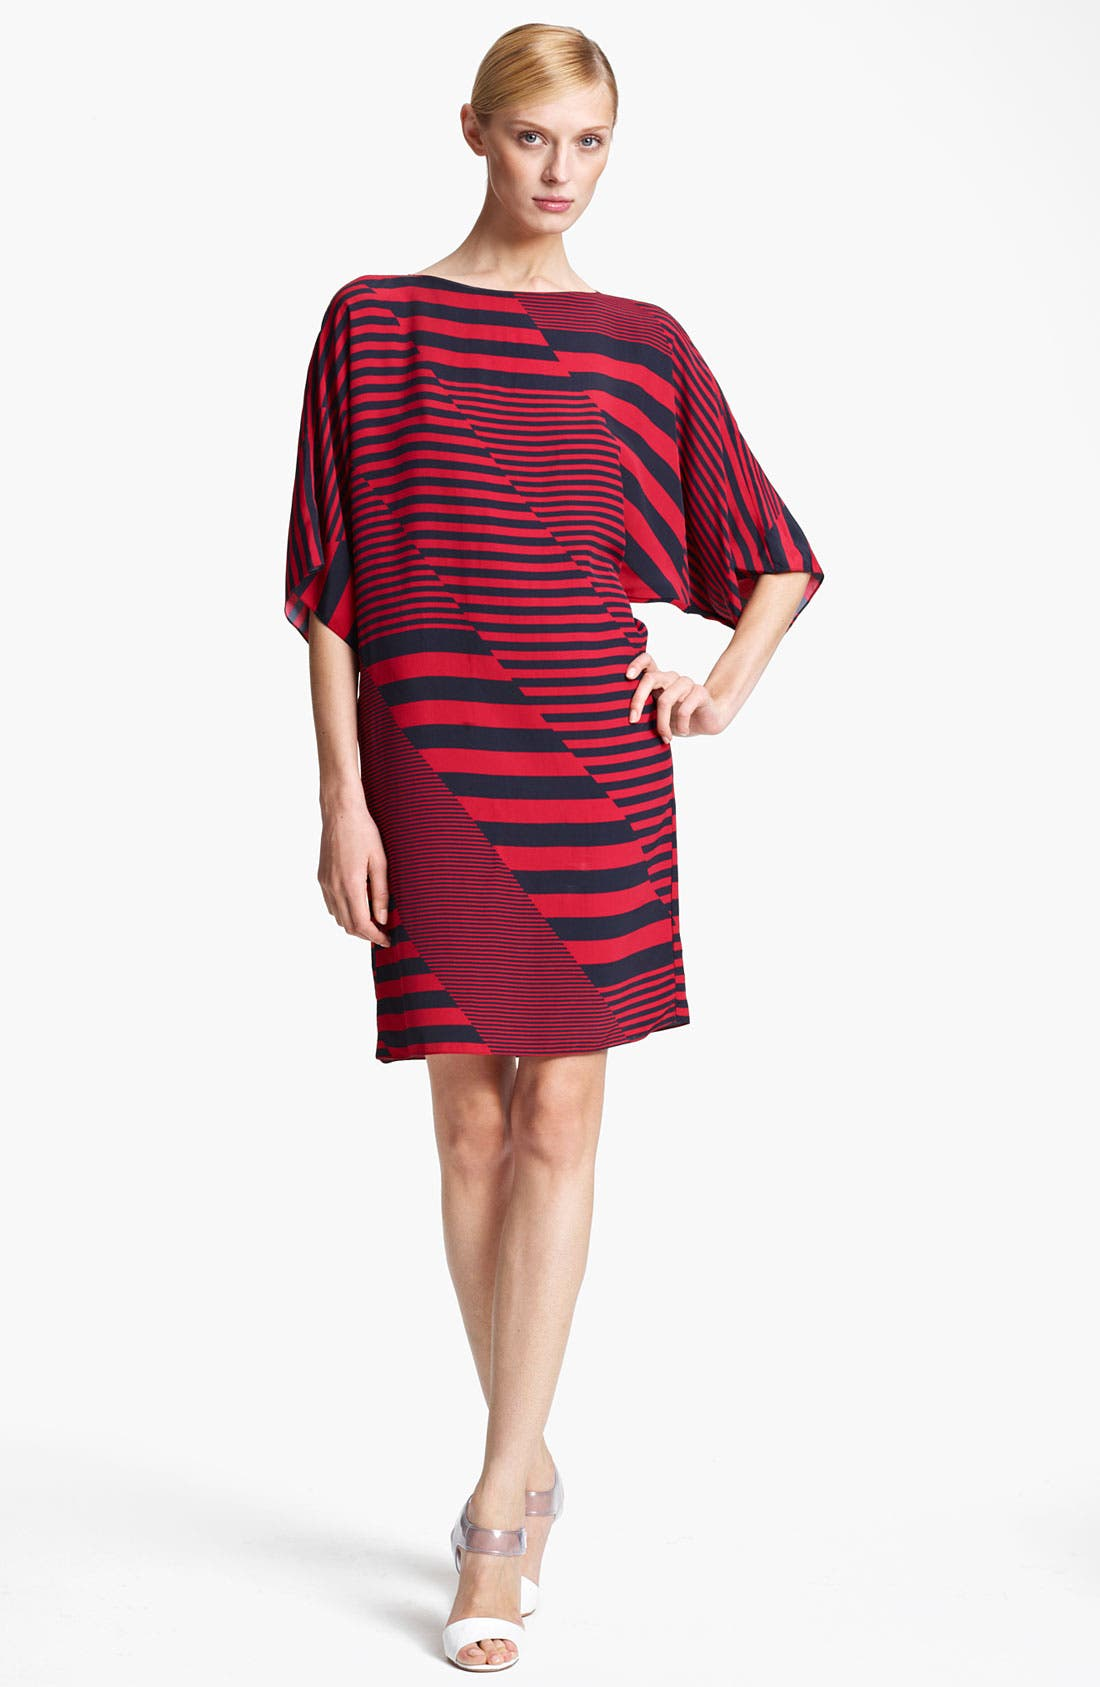 Alternate Image 1 Selected - Michael Kors Stripe Print Marocain Dress